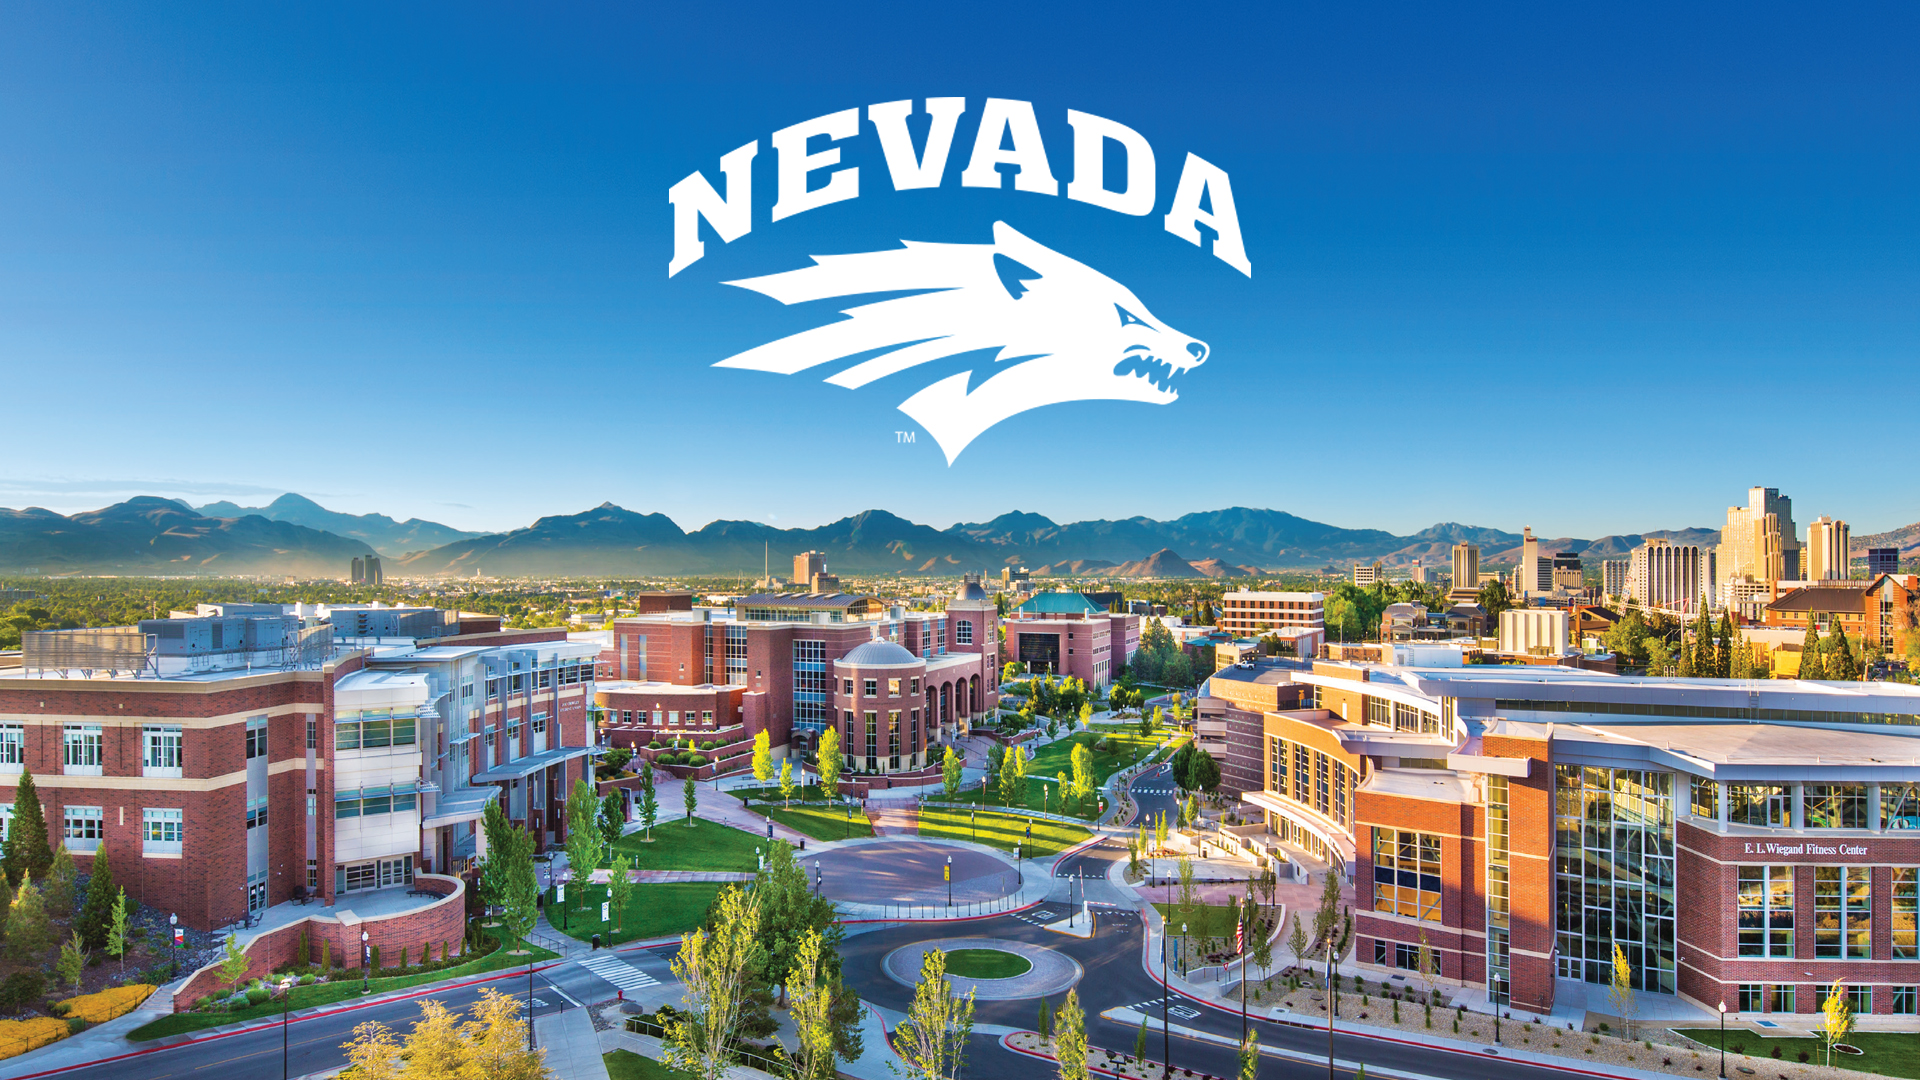 Nevada To Add Mens Cross Country Discontinue Rifle Program